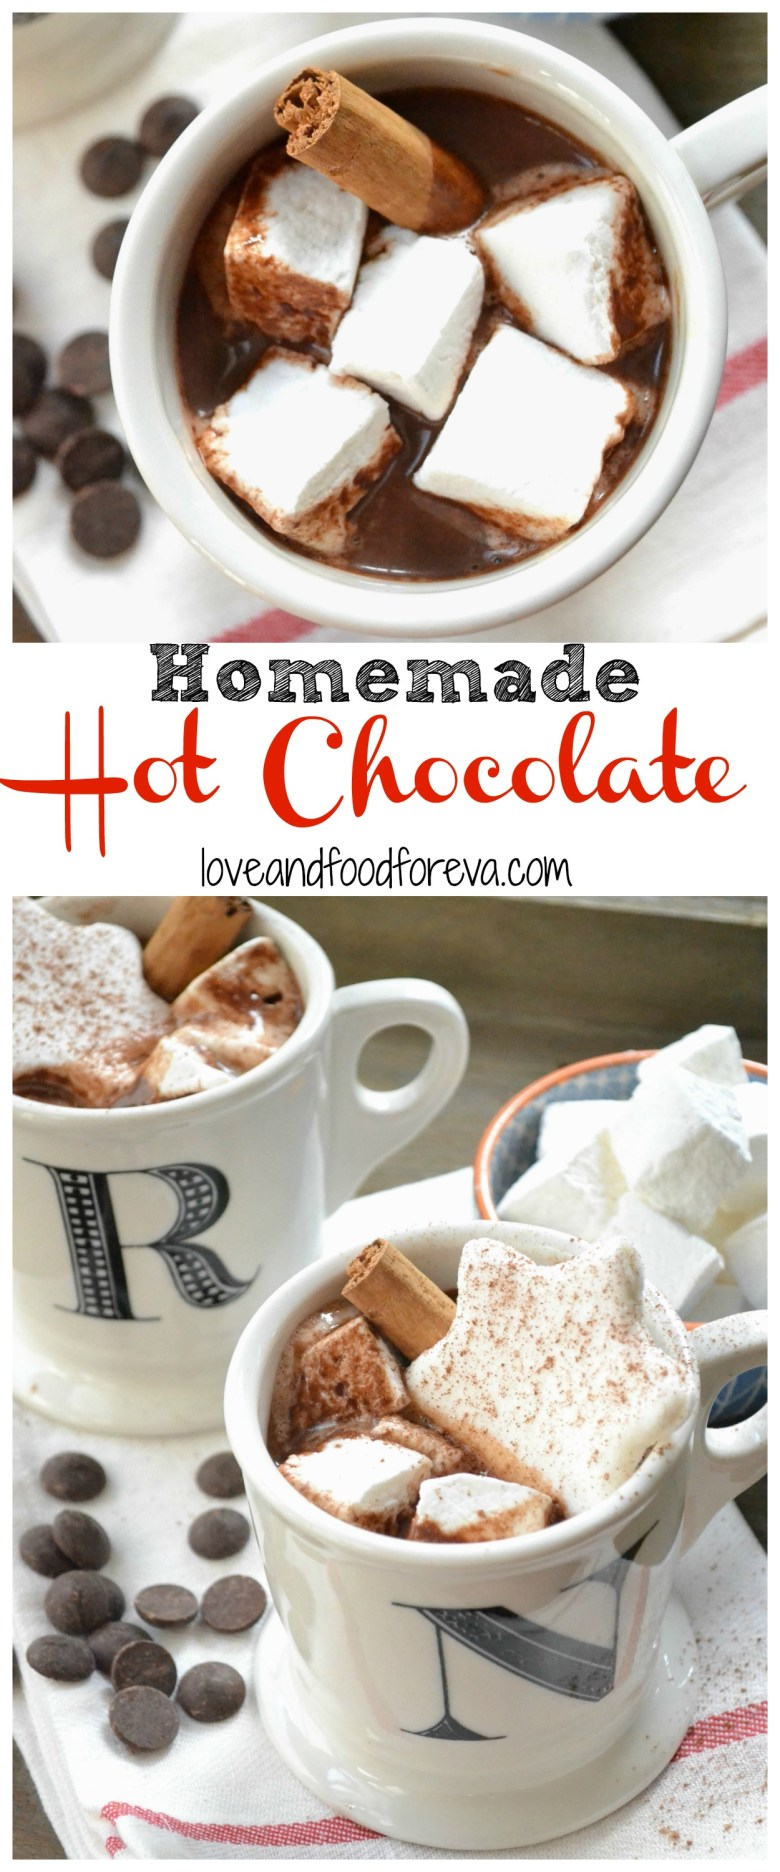 Perfect Hot Chocolate will warm you up in no time!